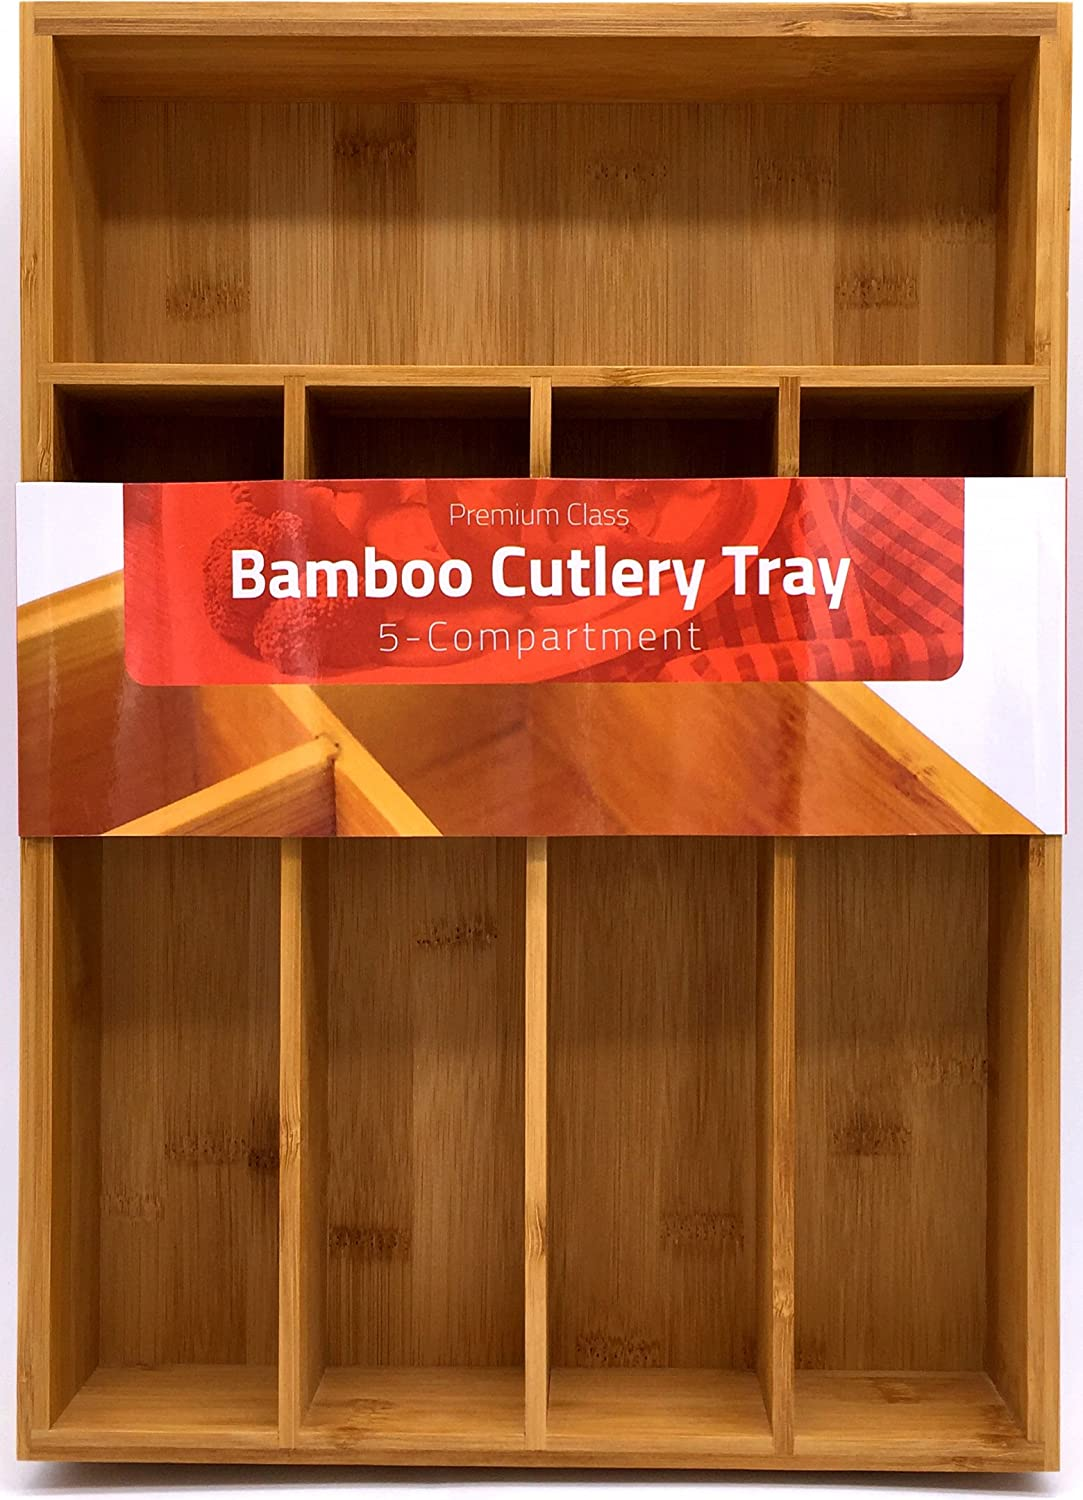 Bamboo Kitchen Tray Organizer   Bamboo Drawer Organizer   Silverware Tray   Bamboo Hardware Organizer   5 Compartments   By Utopia Kitchen by Utopia Kitchen